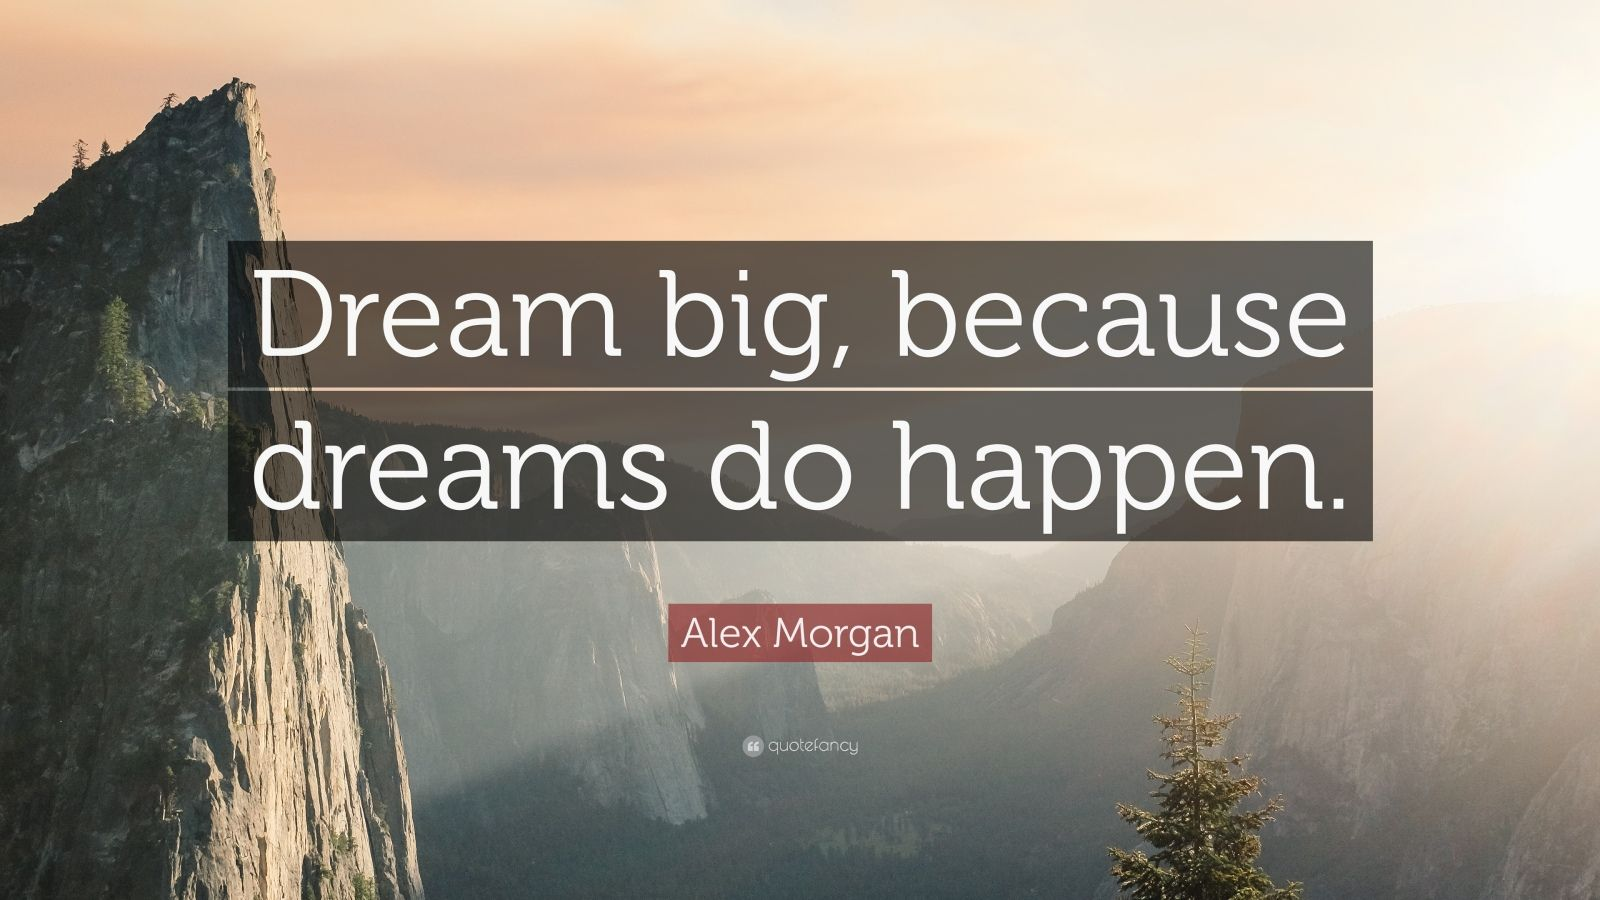 Work Hard Inspirational Quotes Wallpaper Alex Morgan Quote Dream Big Because Dreams Do Happen